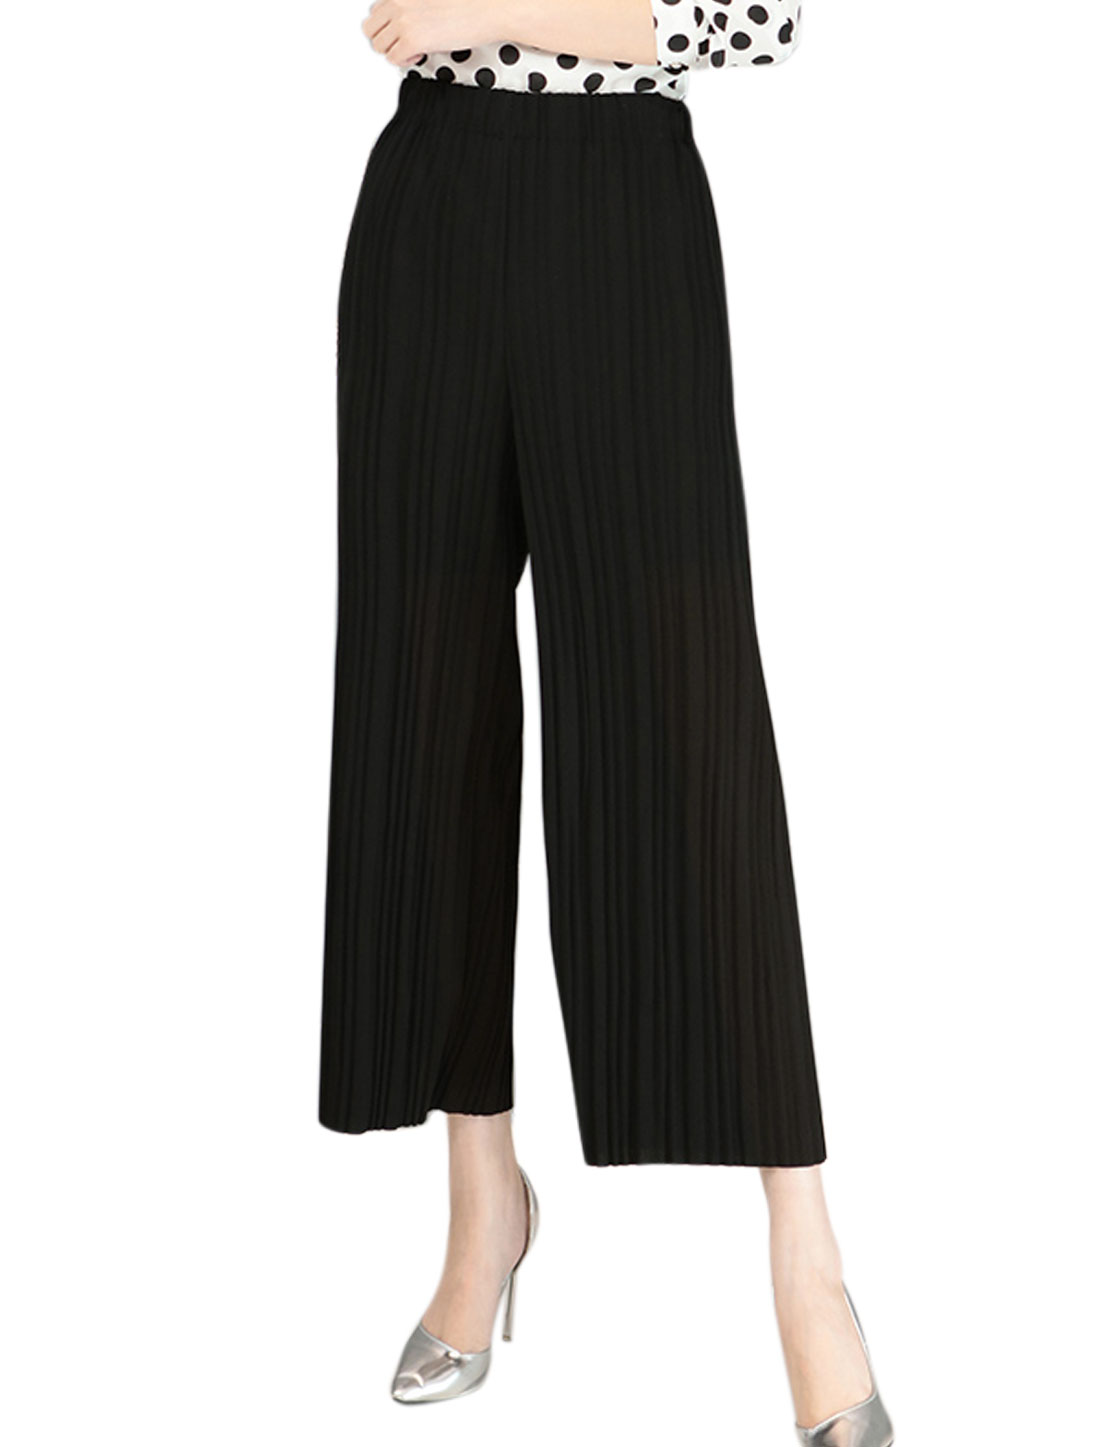 Women High Waist Semi Sheer Pleated Cropped Culottes Black XS